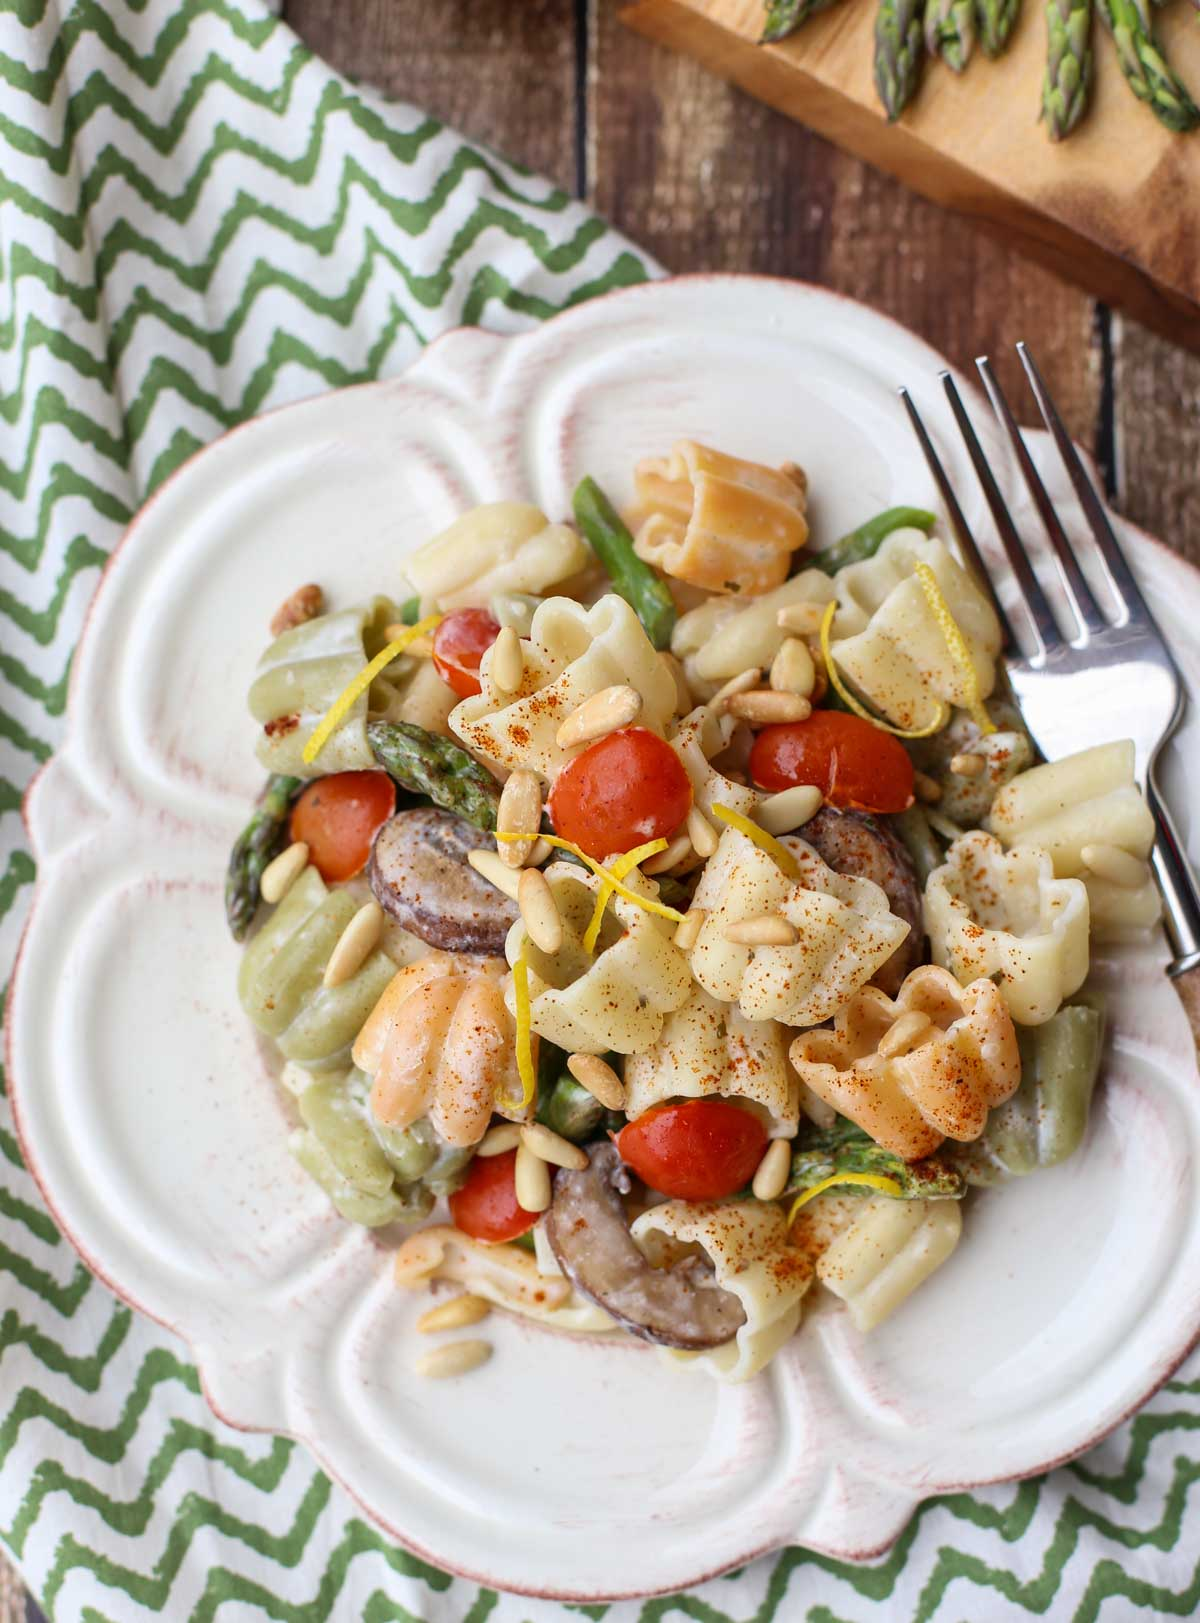 Boursin® Pasta with Oven Roasted Veggies | Simple recipe with sweet roasted veggies and a creamy sauce of Garlic and Herb Boursin Cheese...will become a favorite! Delicious side with grilled meats! | WorldofPastabilities.com